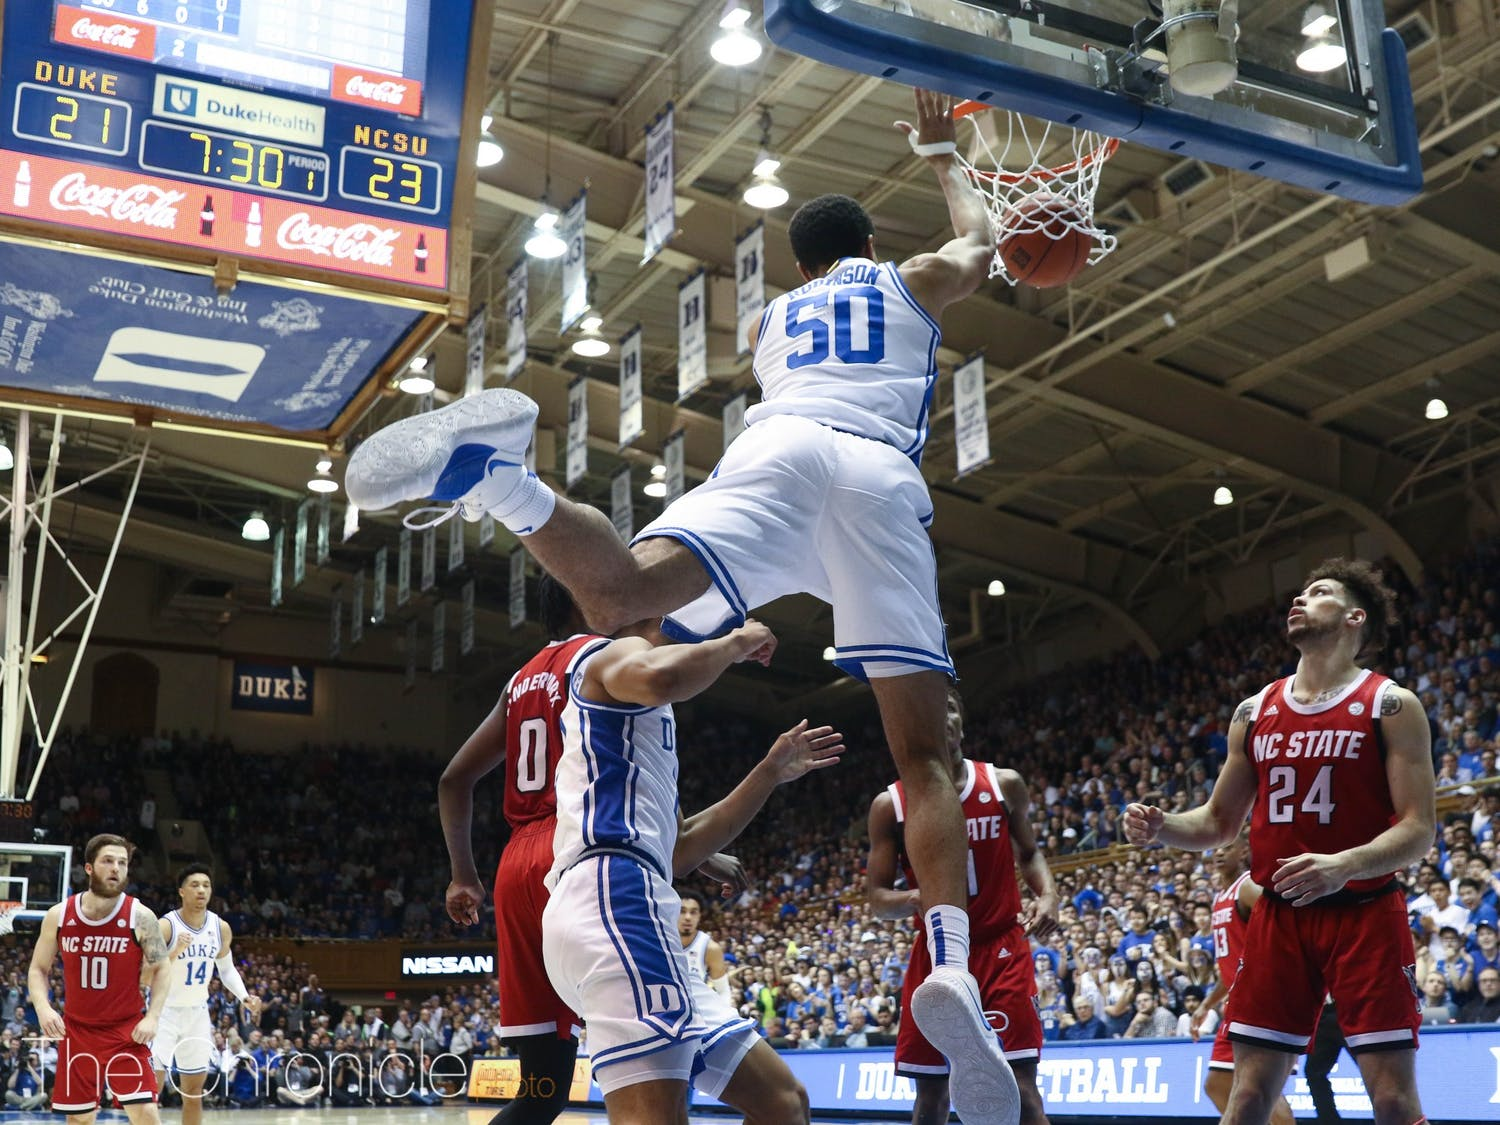 Normally Duke's 11th man, Justin Robinson played a critical role against N.C. State.